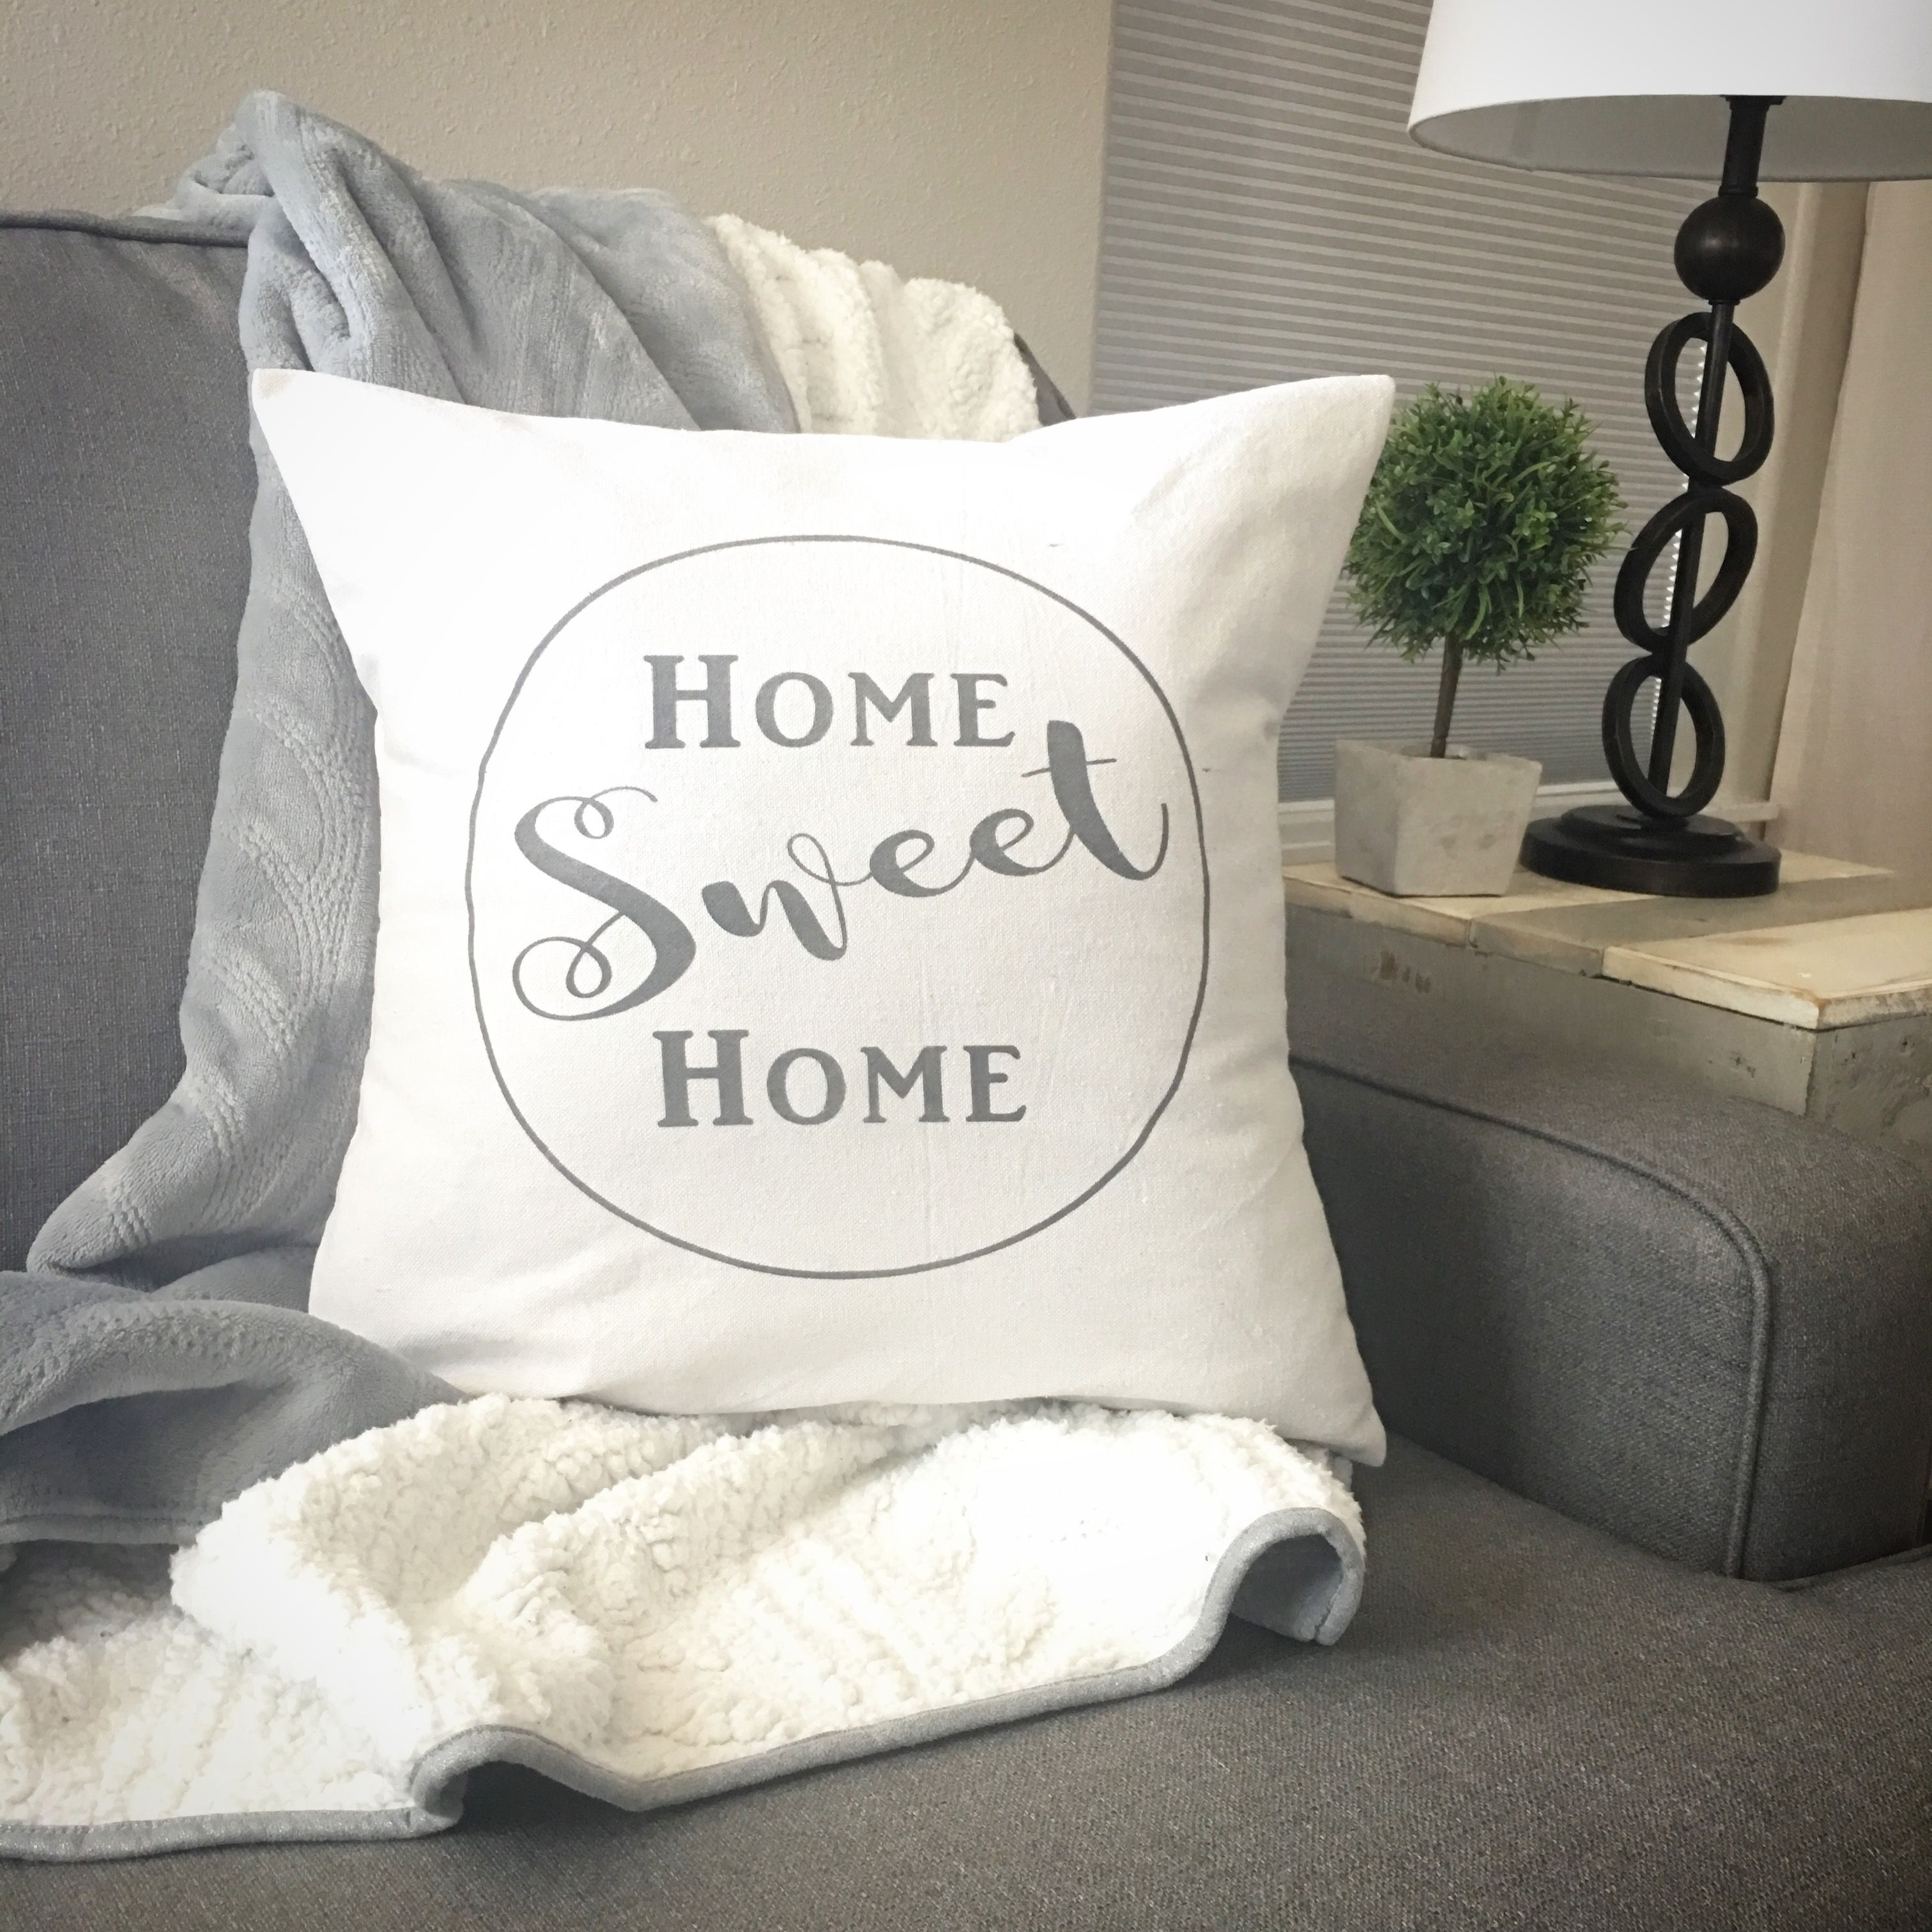 Farmhouse Home Sweet Home Pillow Cover Pillows, Bed